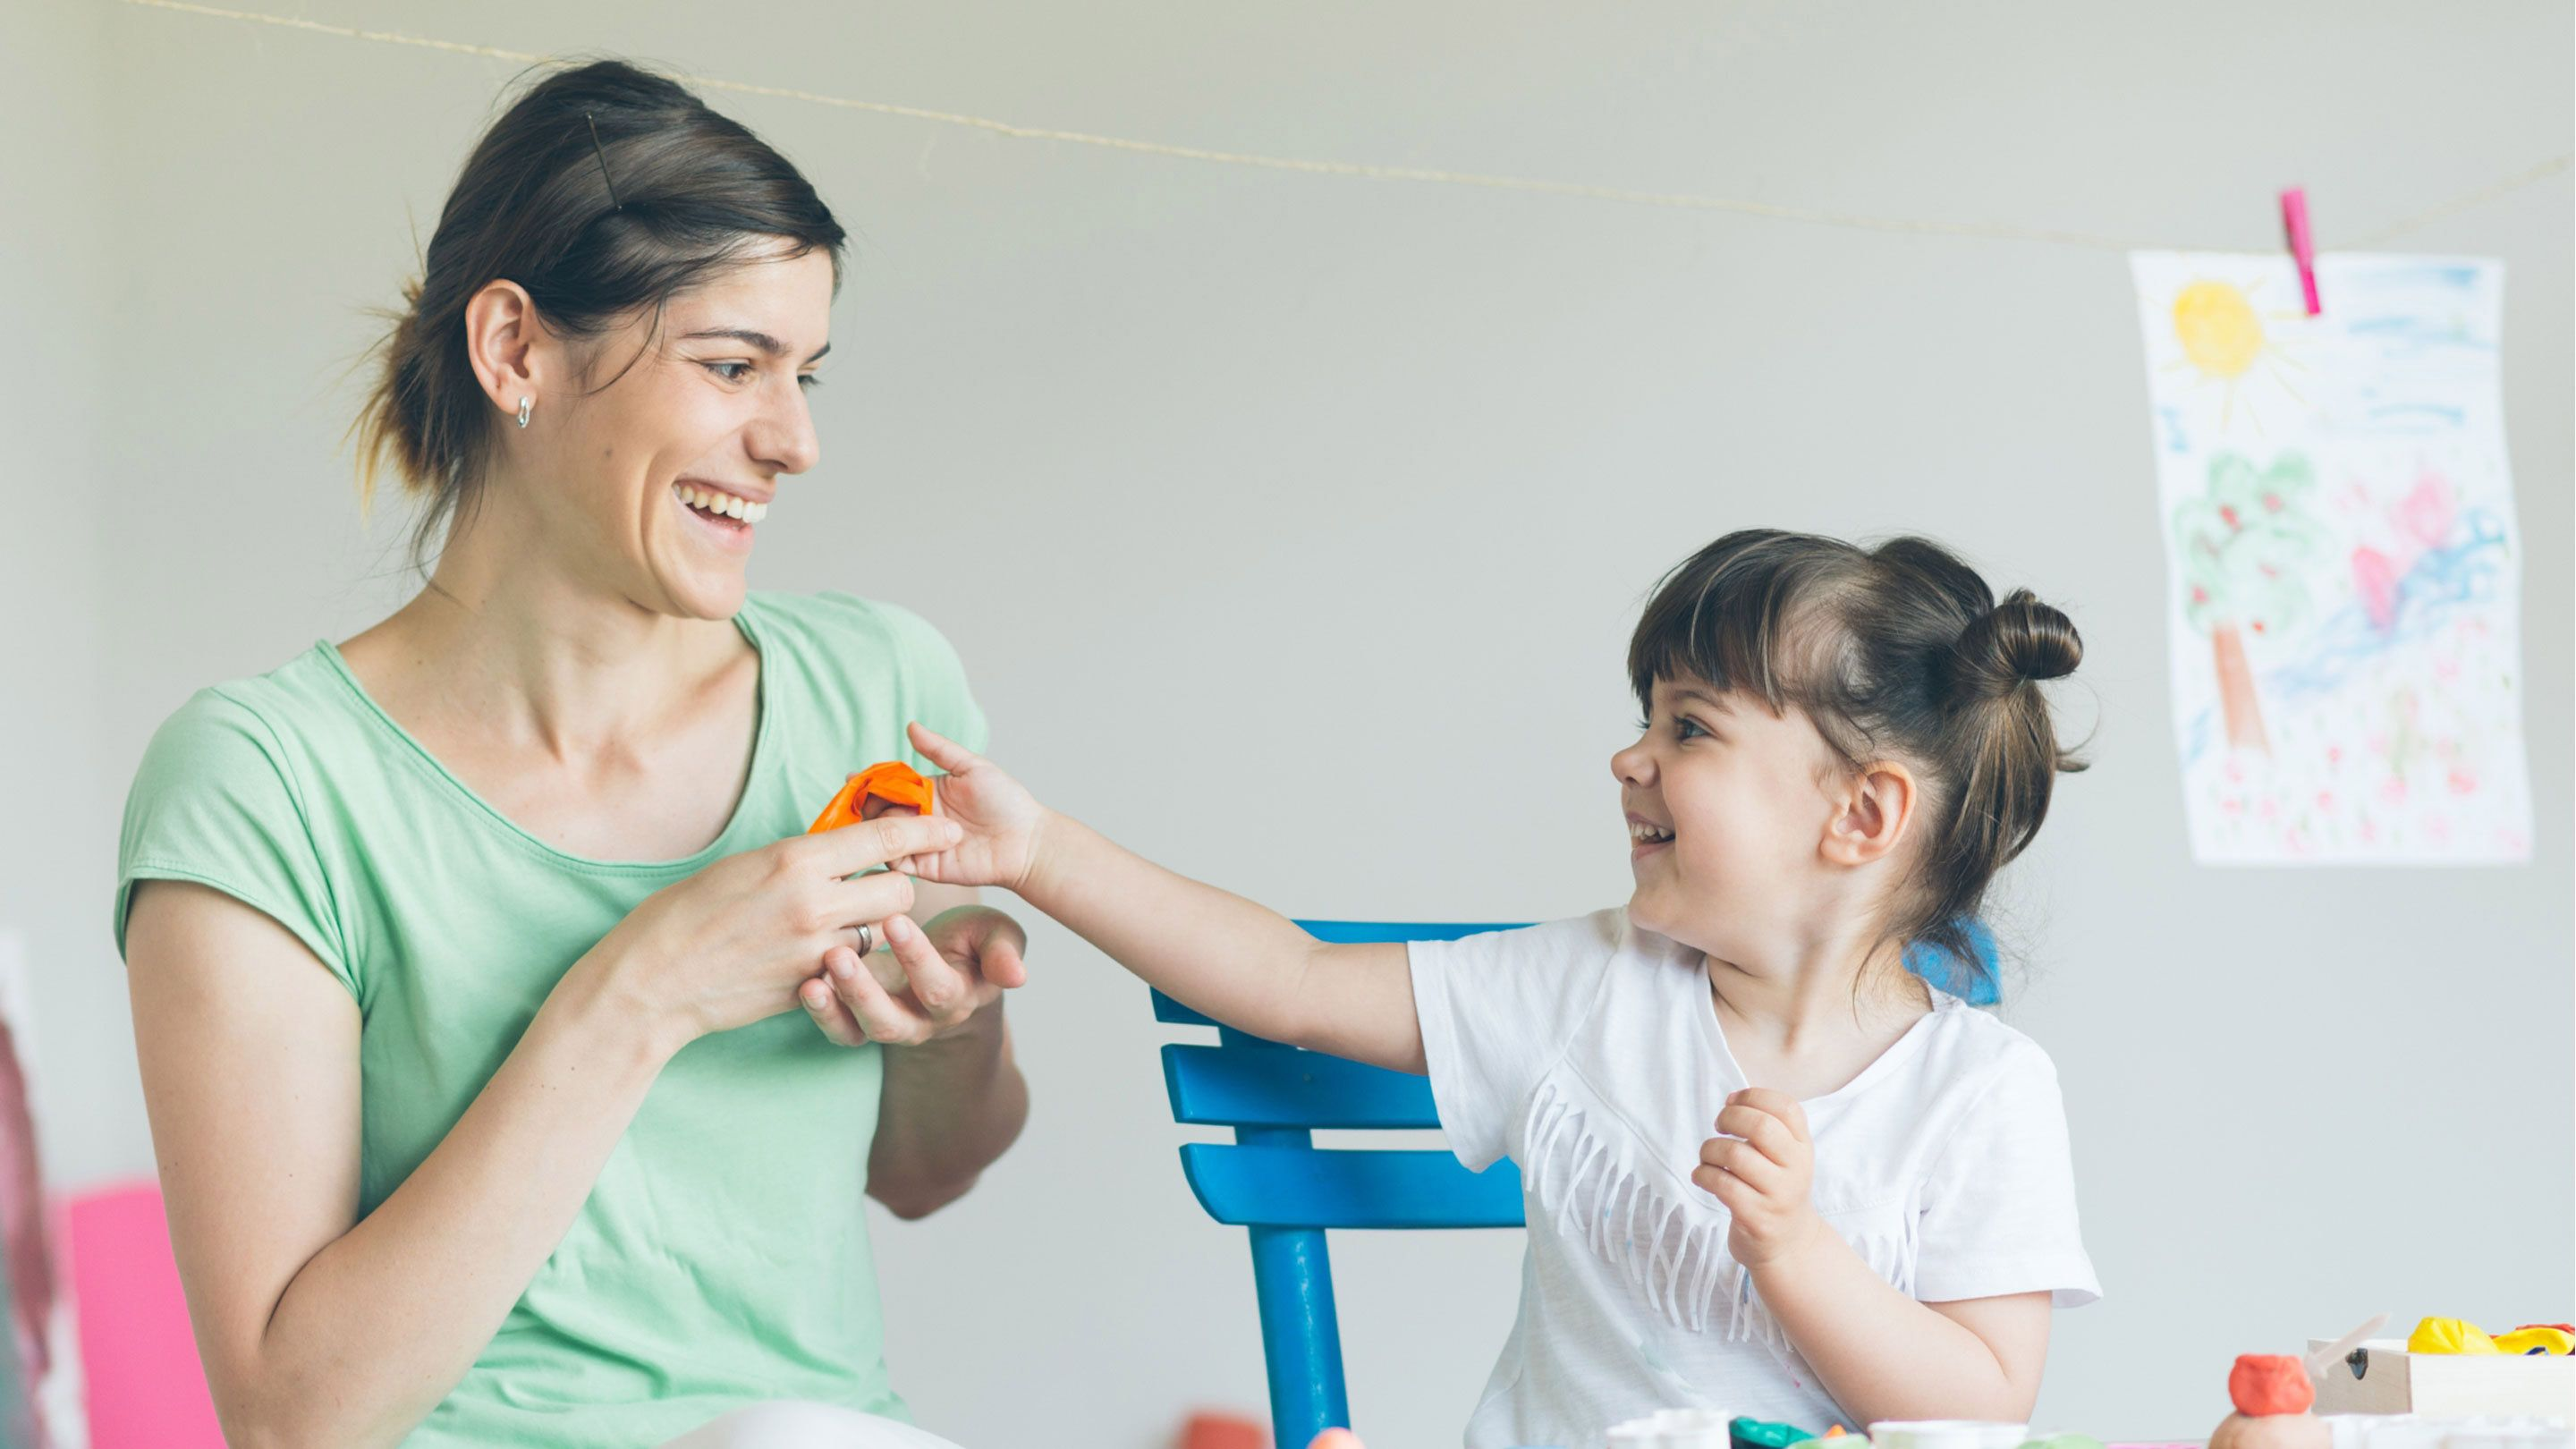 A woman and a young child play together.